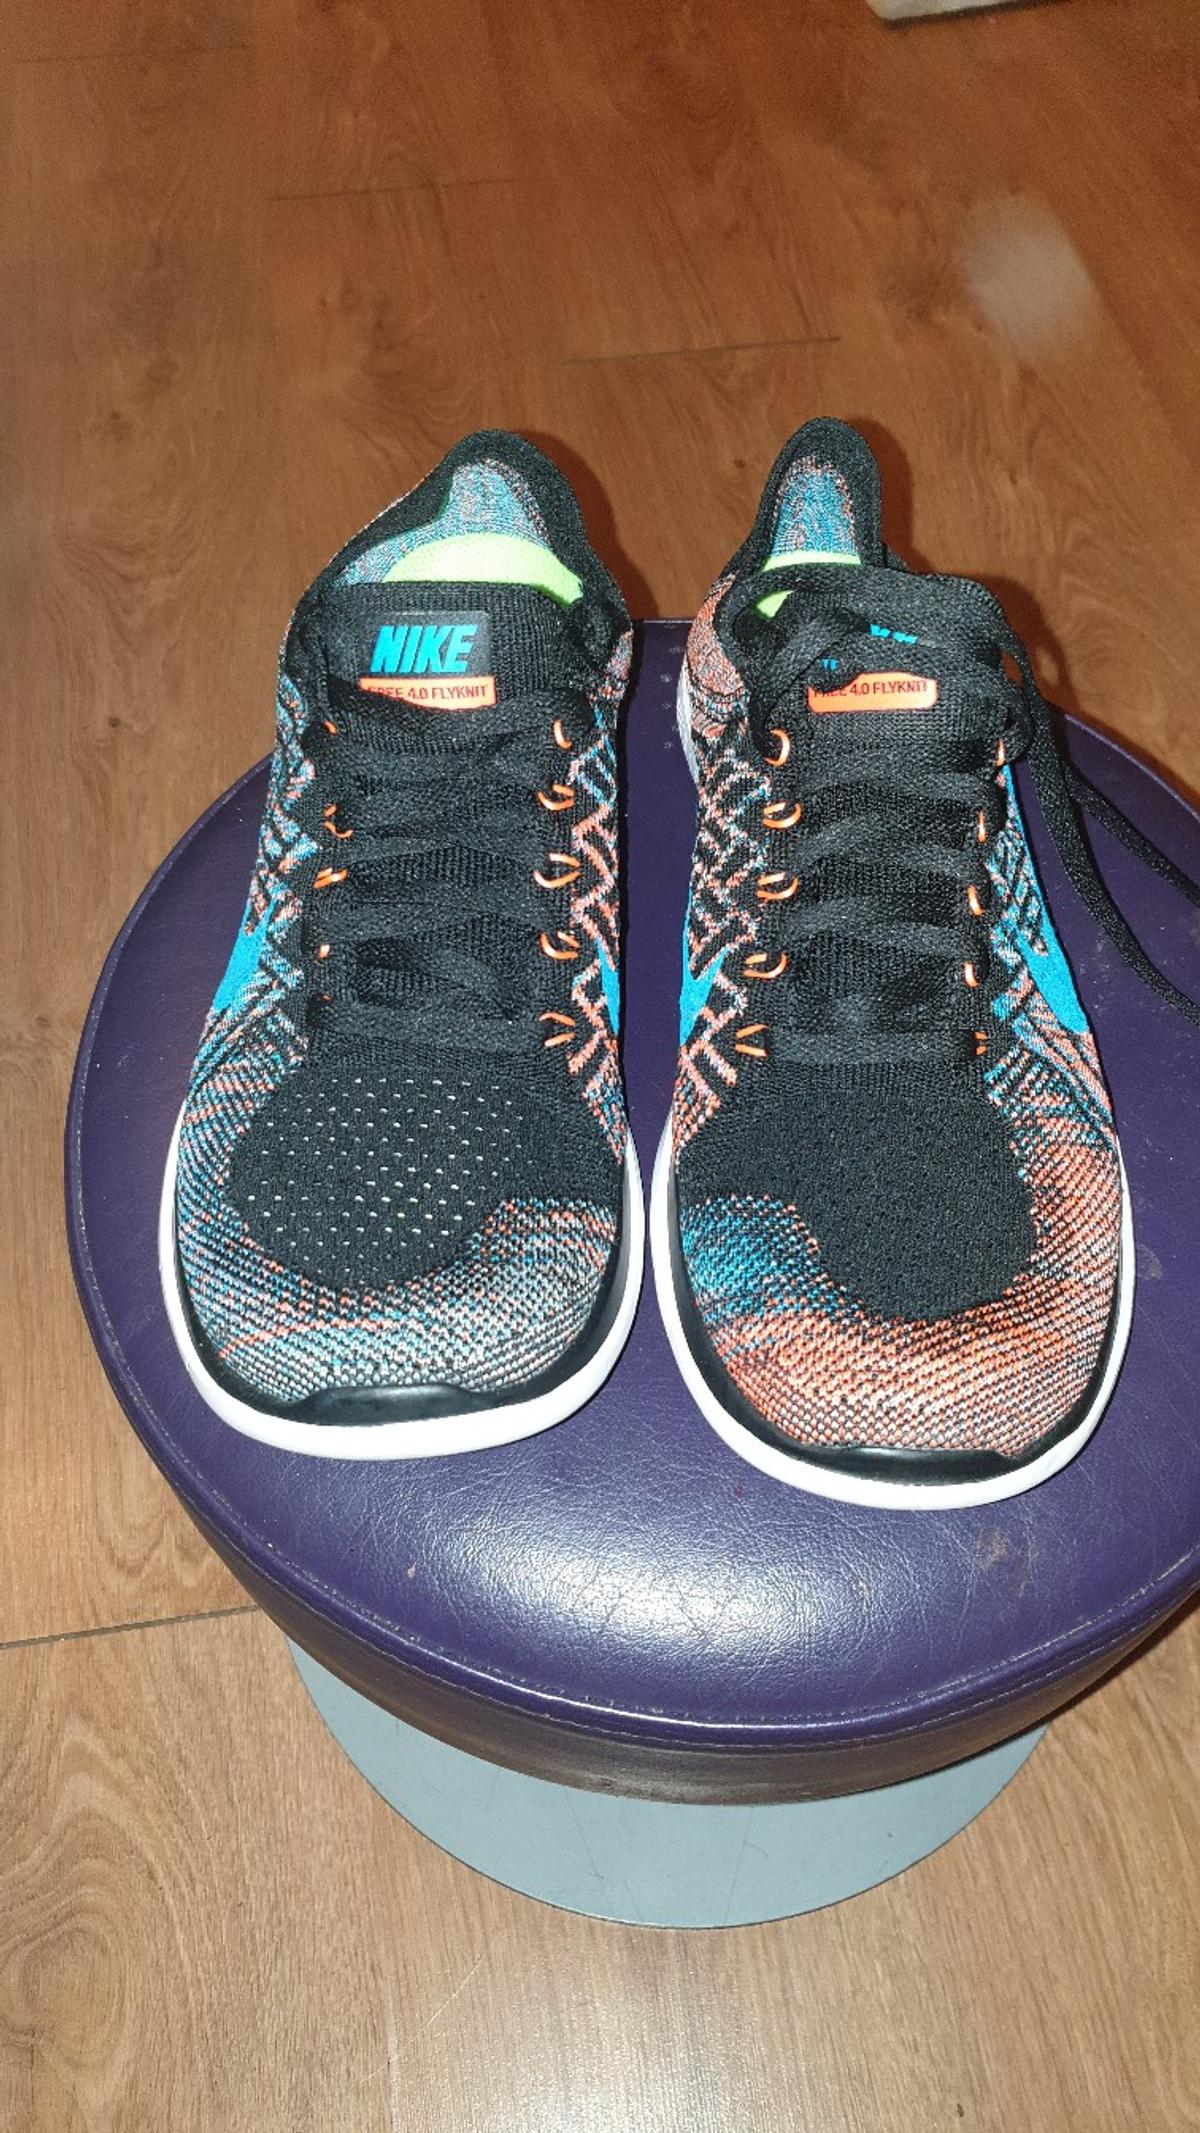 quality design f6a19 09efd Nike free 4.0 fly knit size 8,5 in SE1 London for £45.00 for ...